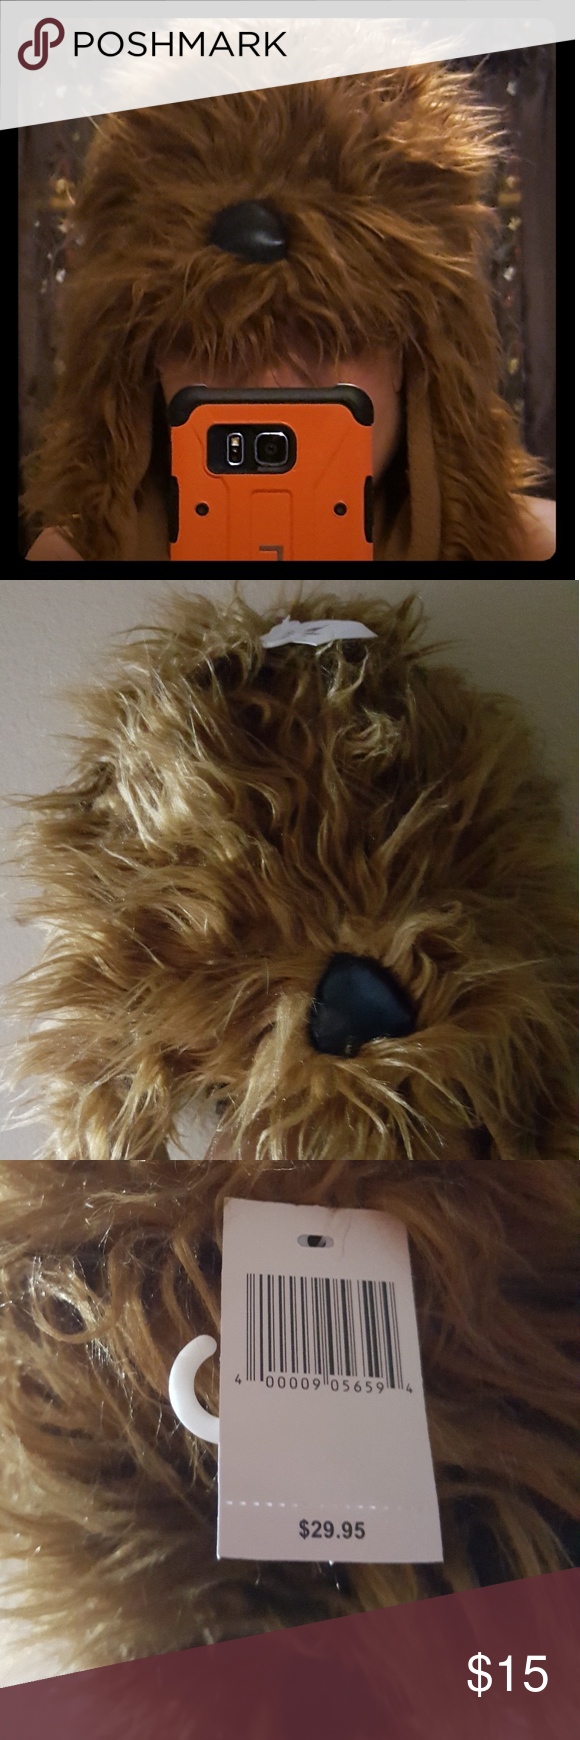 ... clearance disney chewbacca hat brown furry cheewbacca hat with long  ears. purchased at disneyland and 58b2af6f5ba9